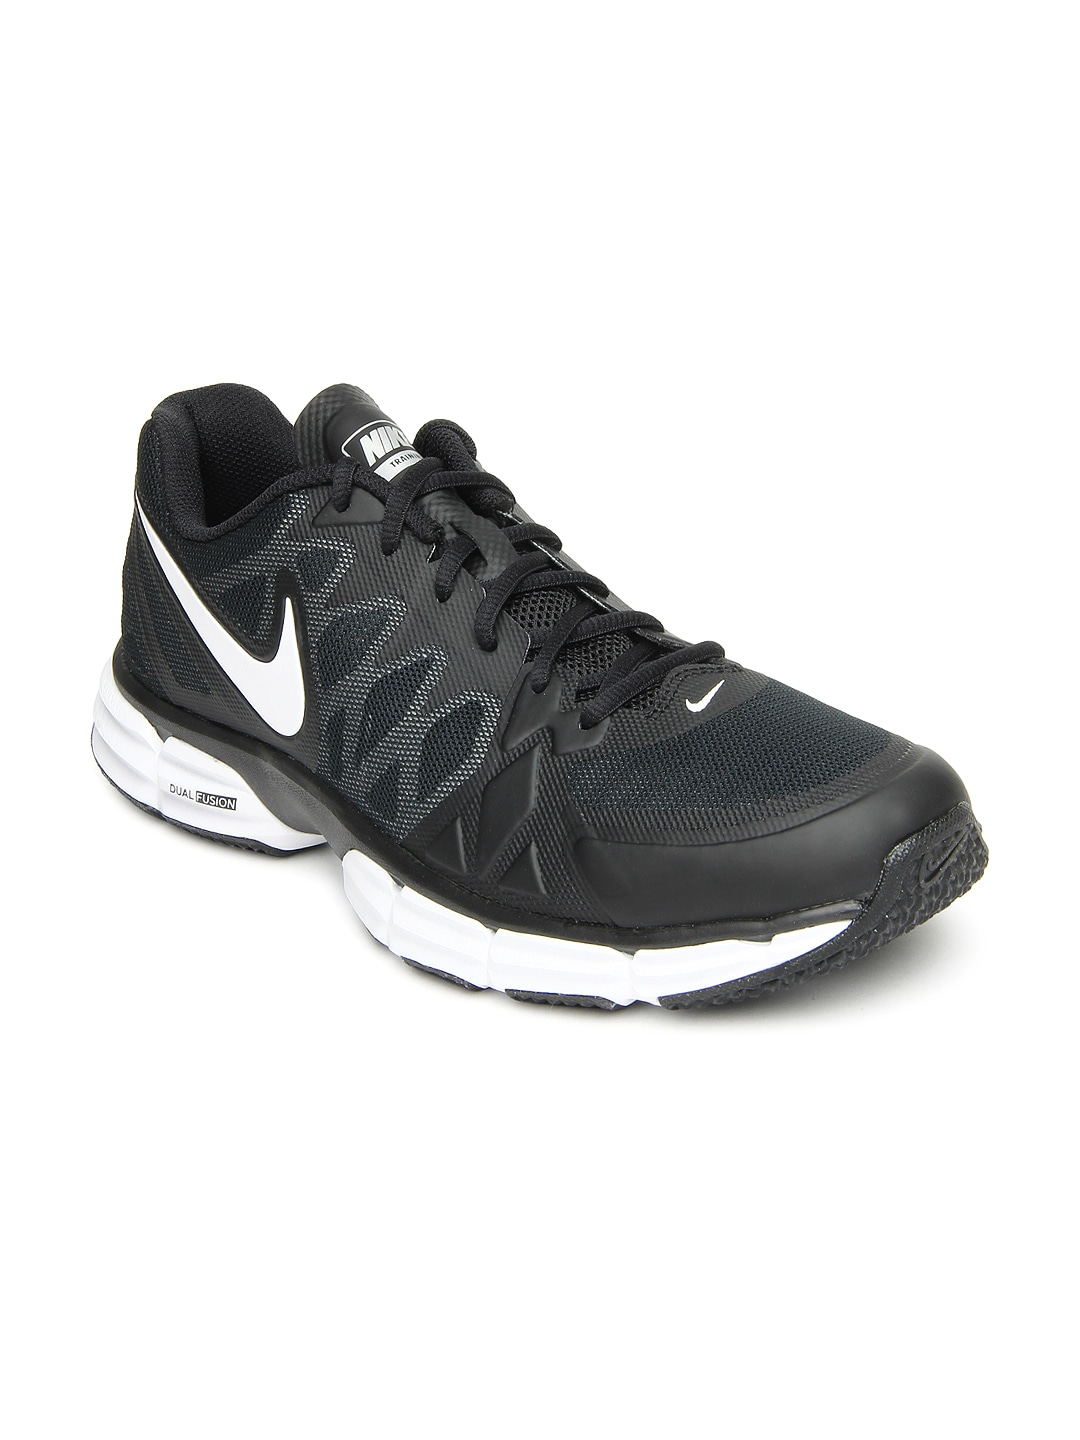 Gym Training Shoes Online India